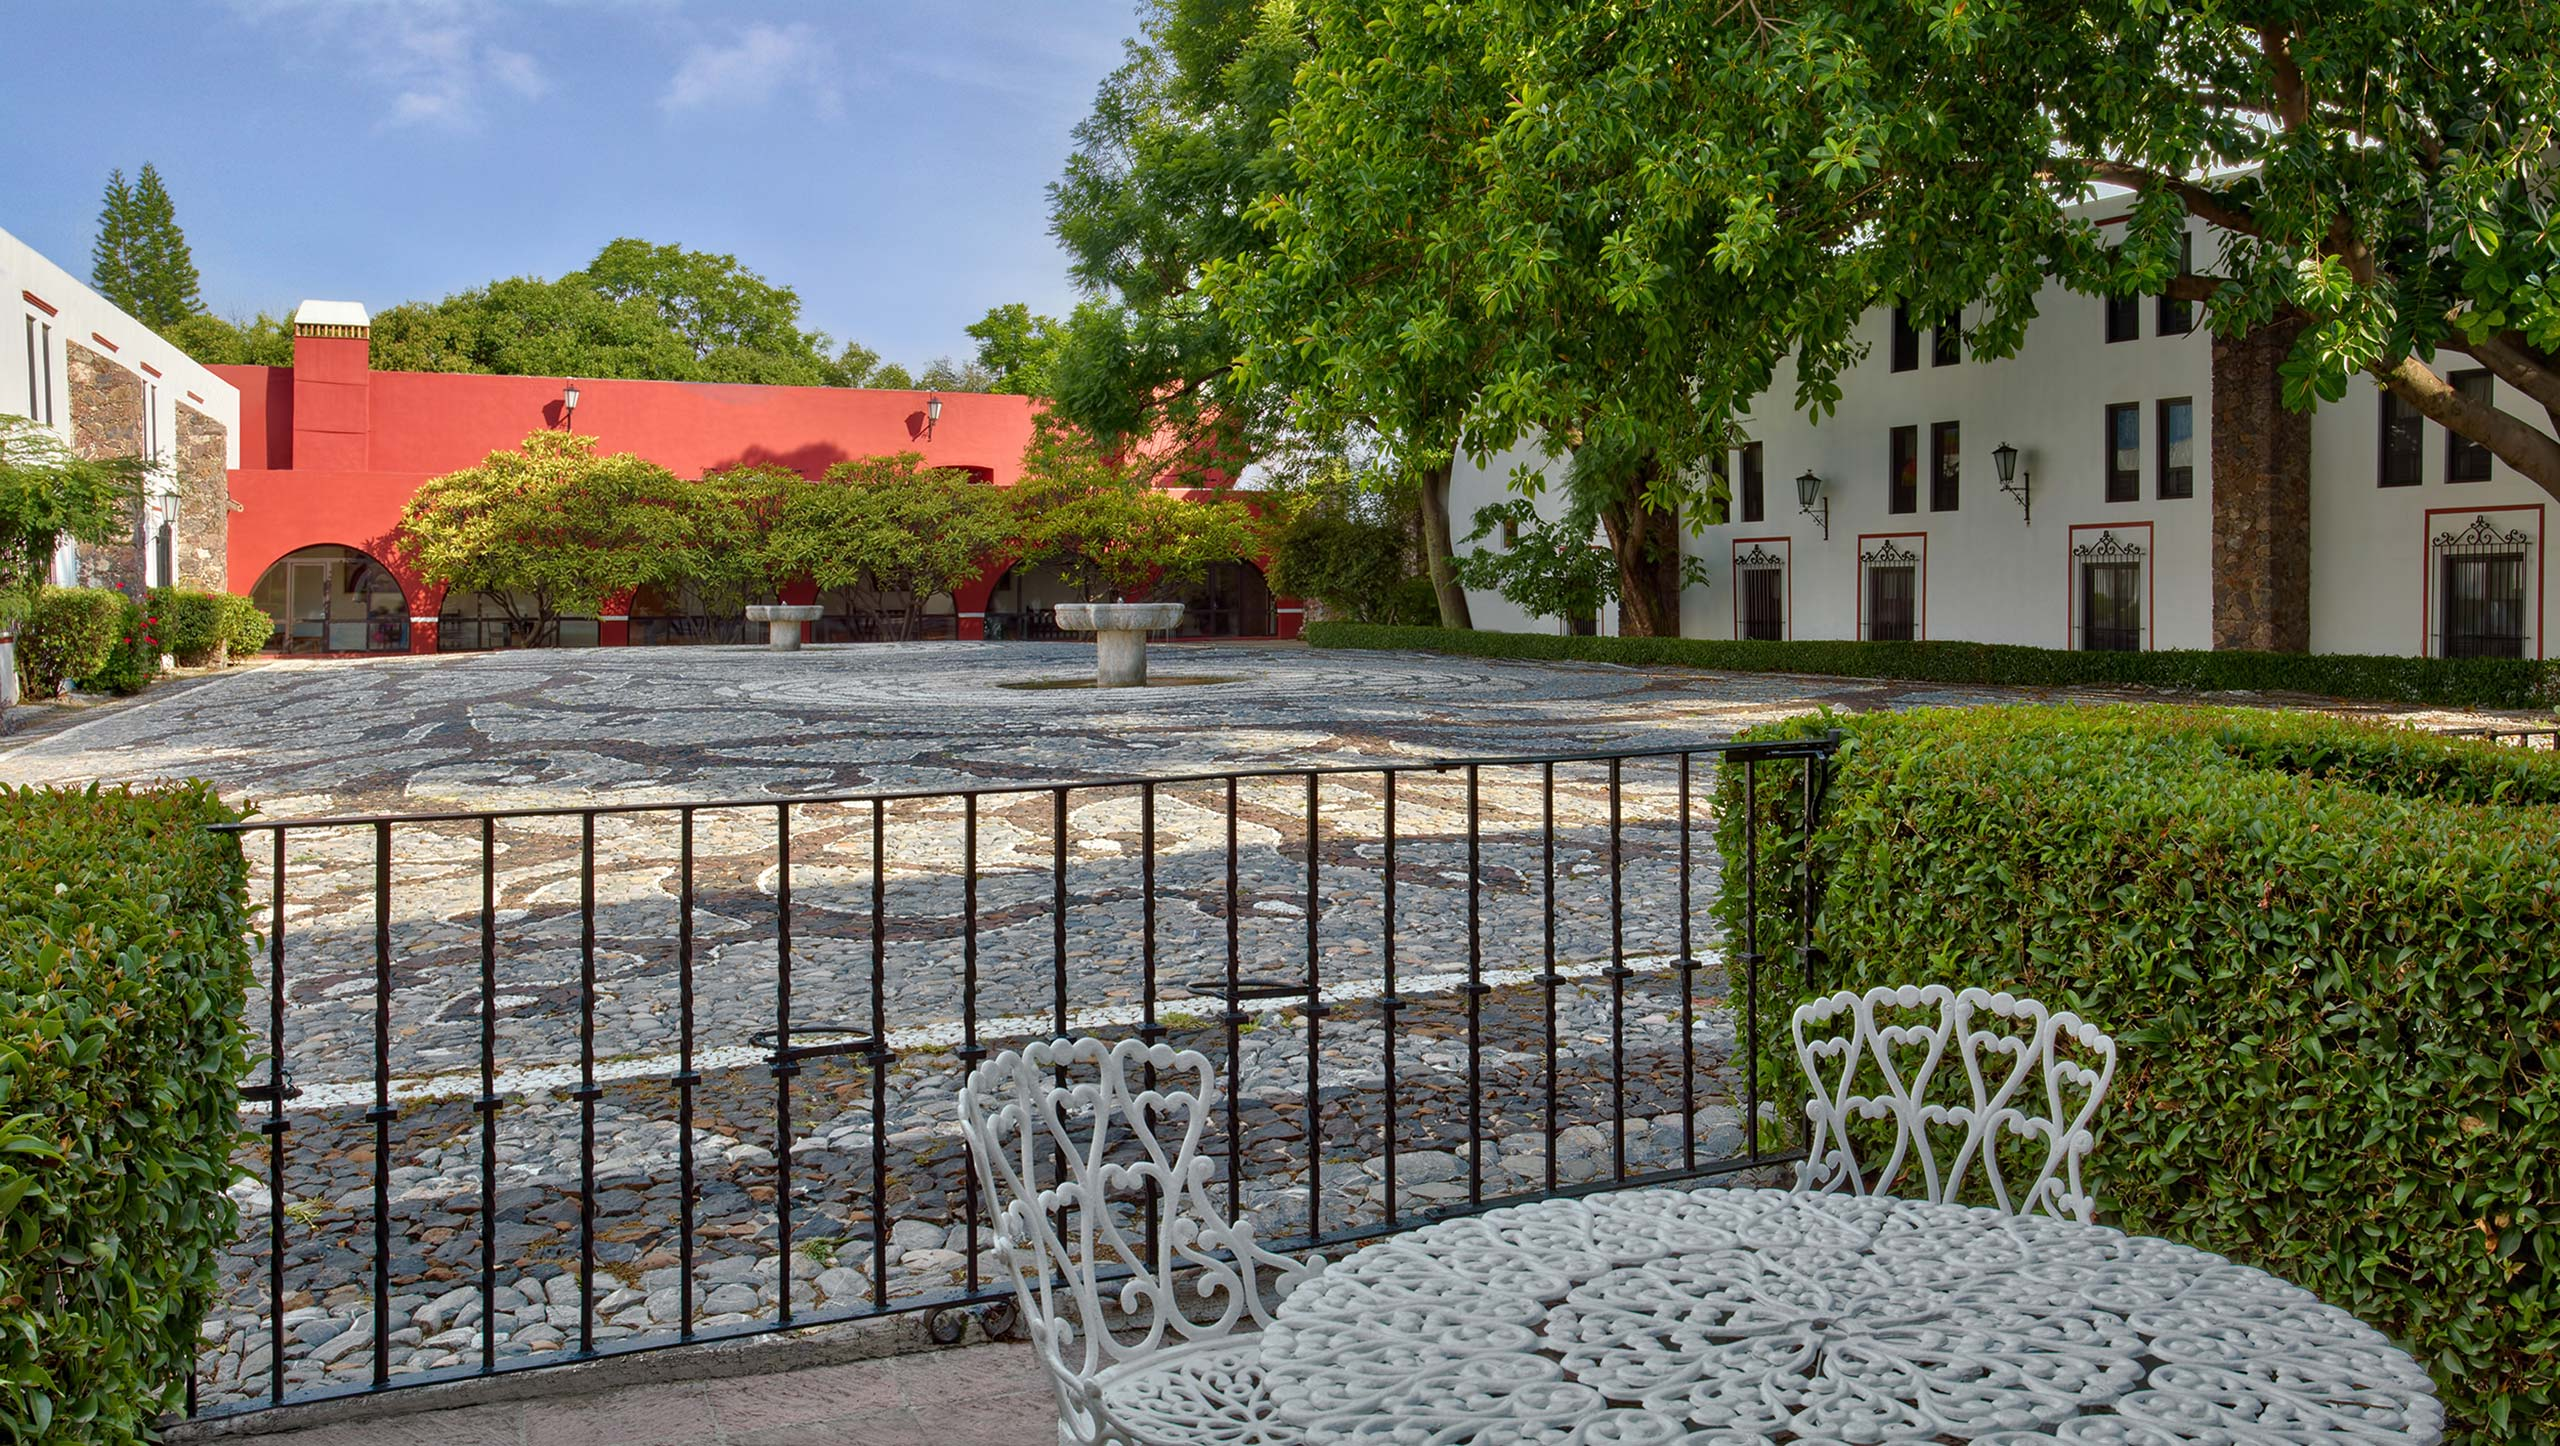 Terrace at Hotel Hacienda Jurica by Brisas Queretaro